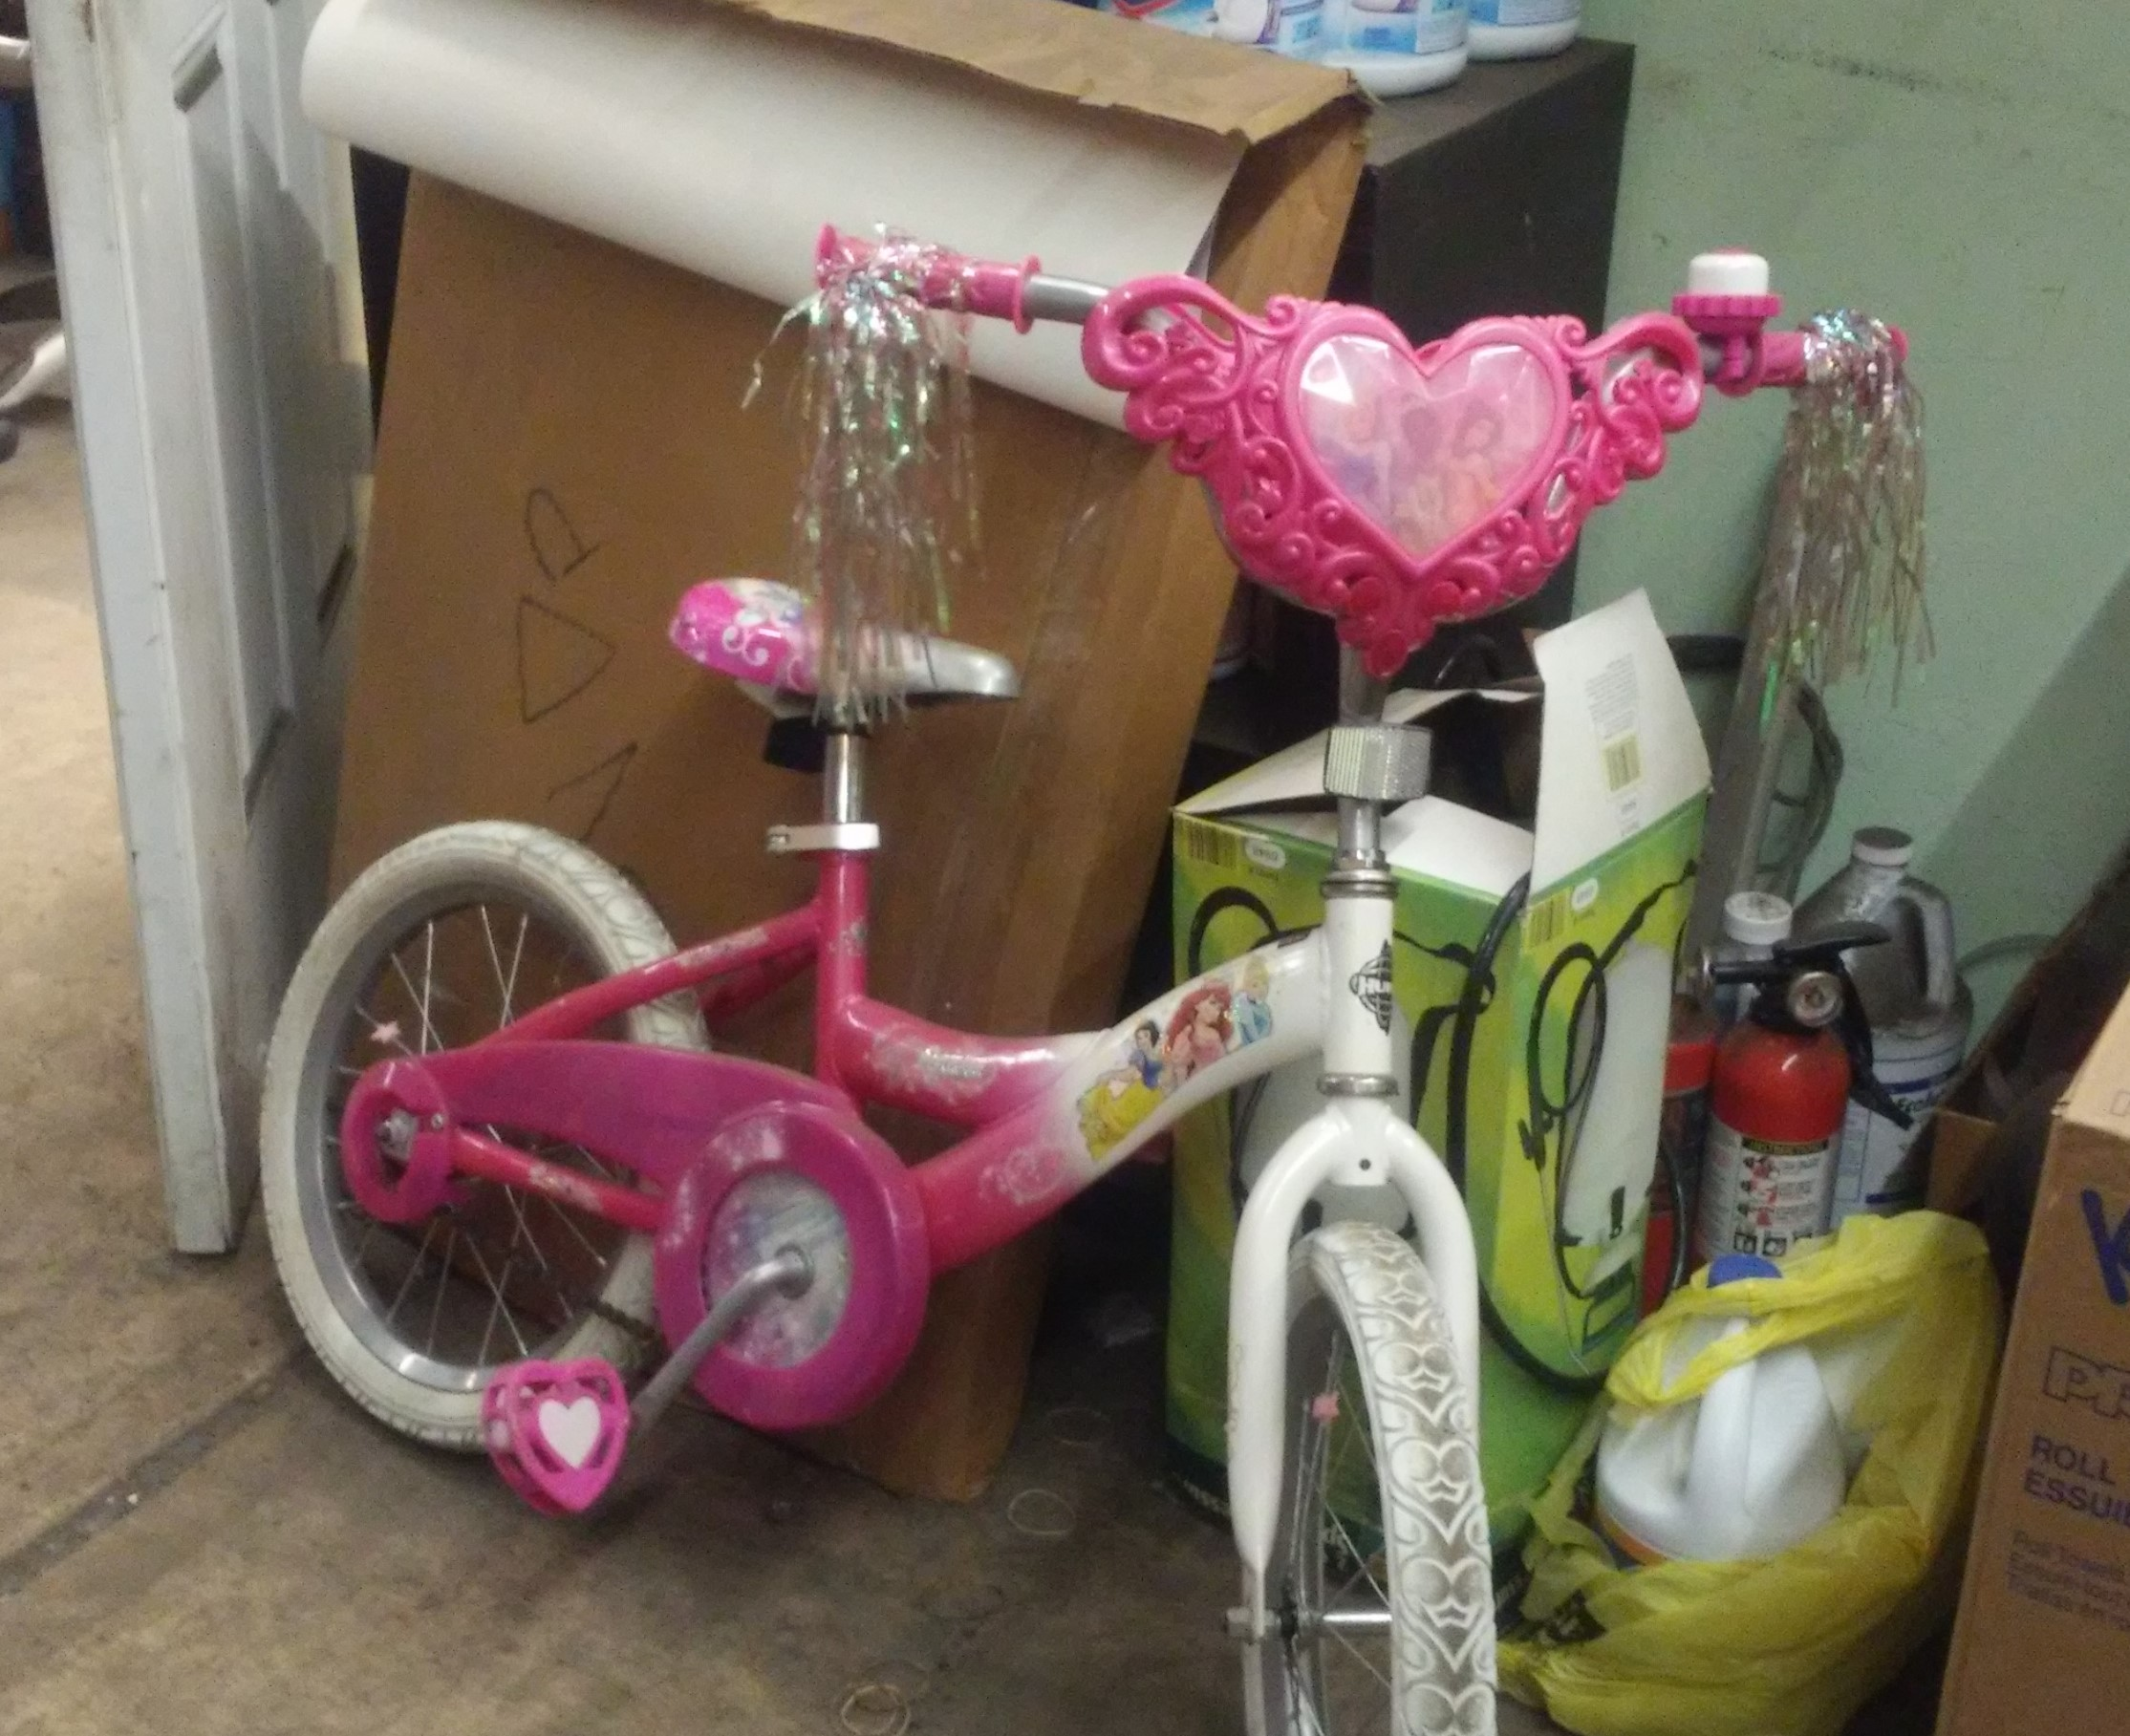 Kids Disney Princess Bike For Sale - Pink - Training Wheels Not Included - Used